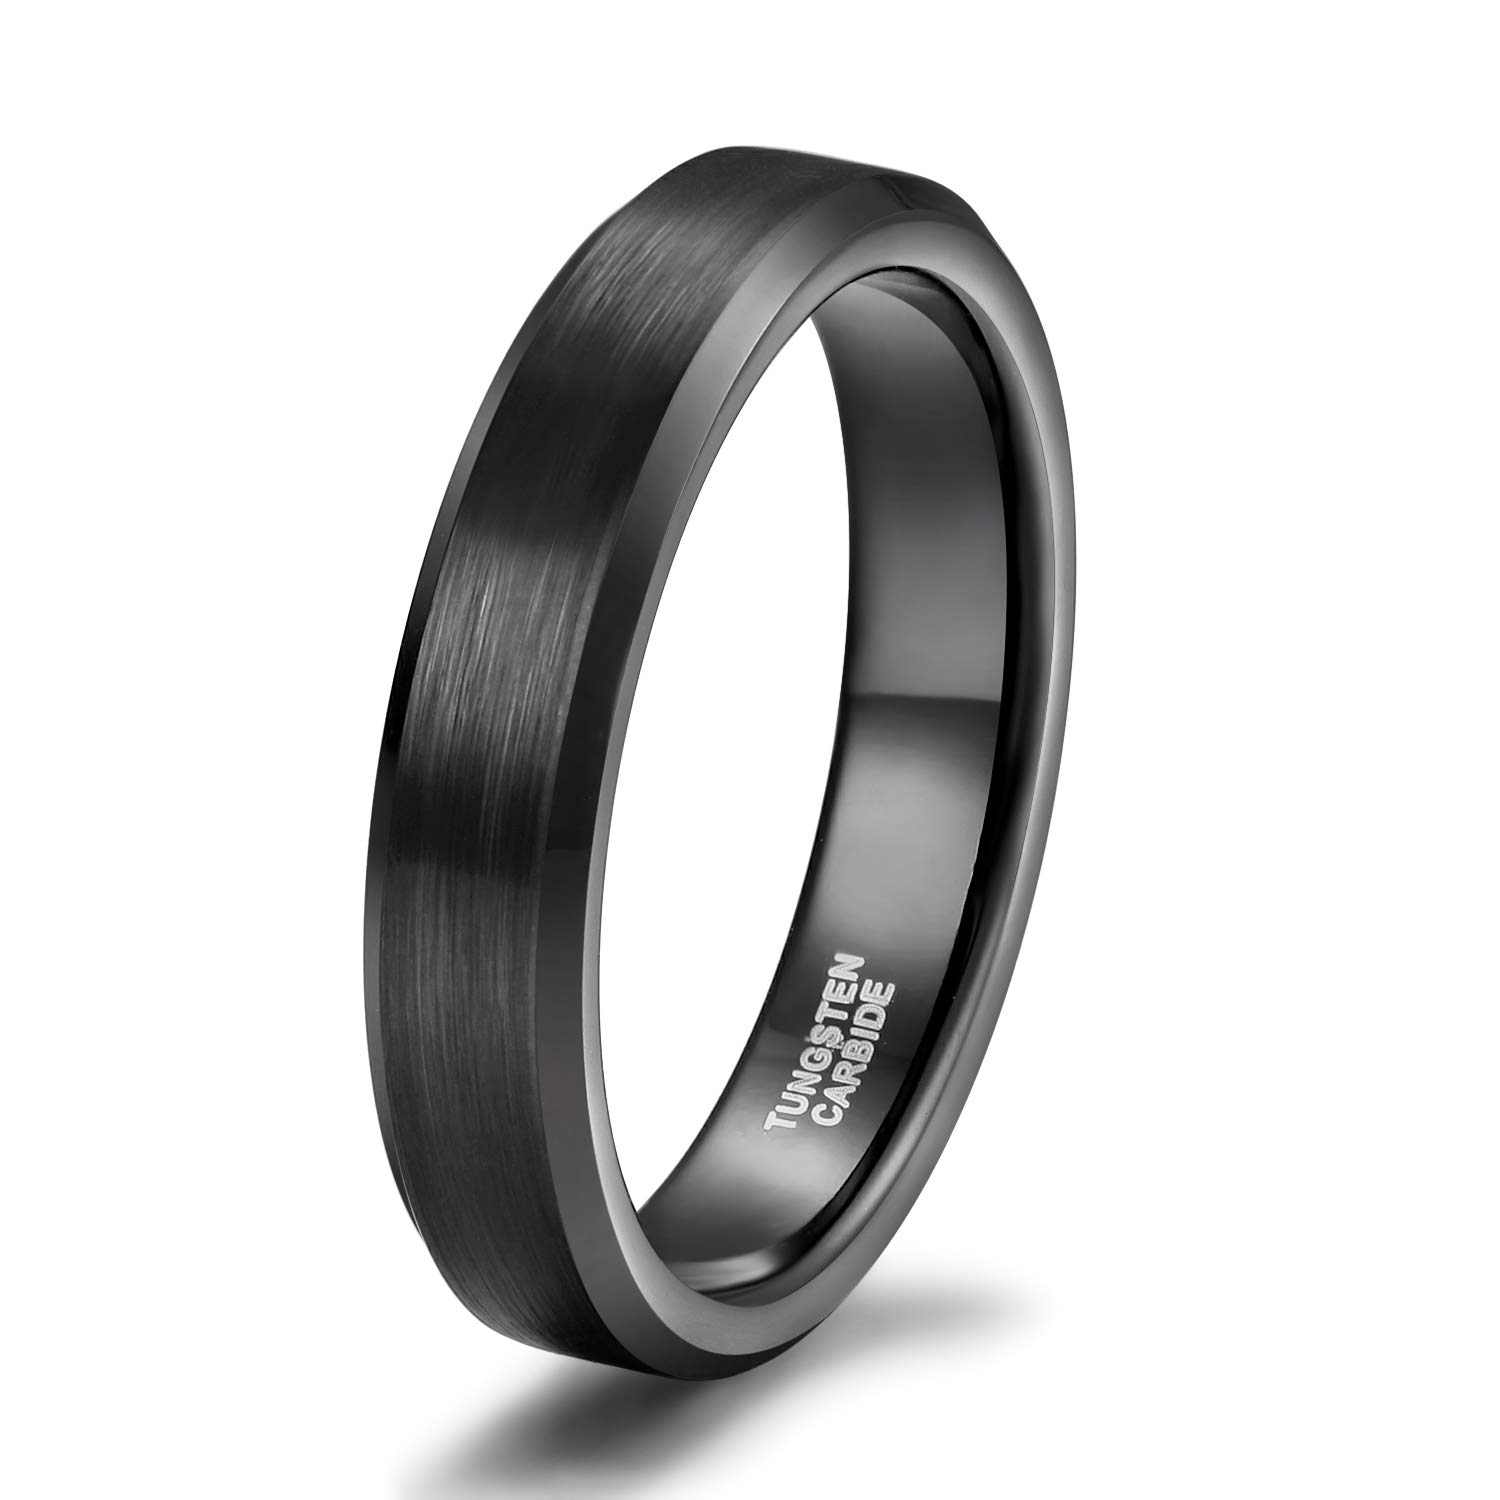 4mm 6mm 8mm Black Tungsten Carbide Ring Band for Men Women Beveled Edges Brushed Comfort Fit Size 4-15 (tungsten 4mm, 11.5)